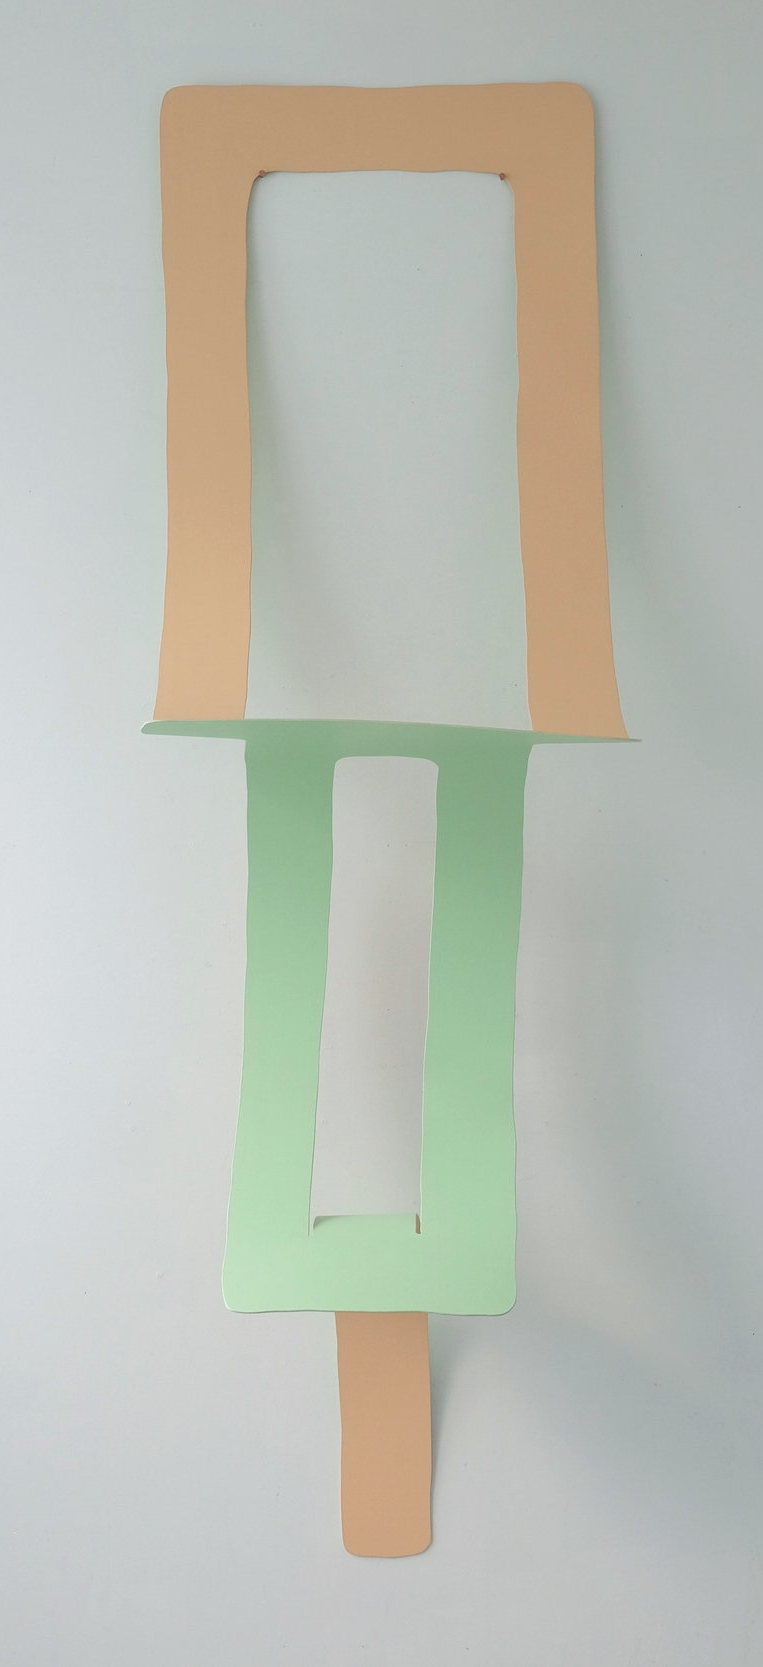 Folder - acrylic on bending poplar with copper nails79